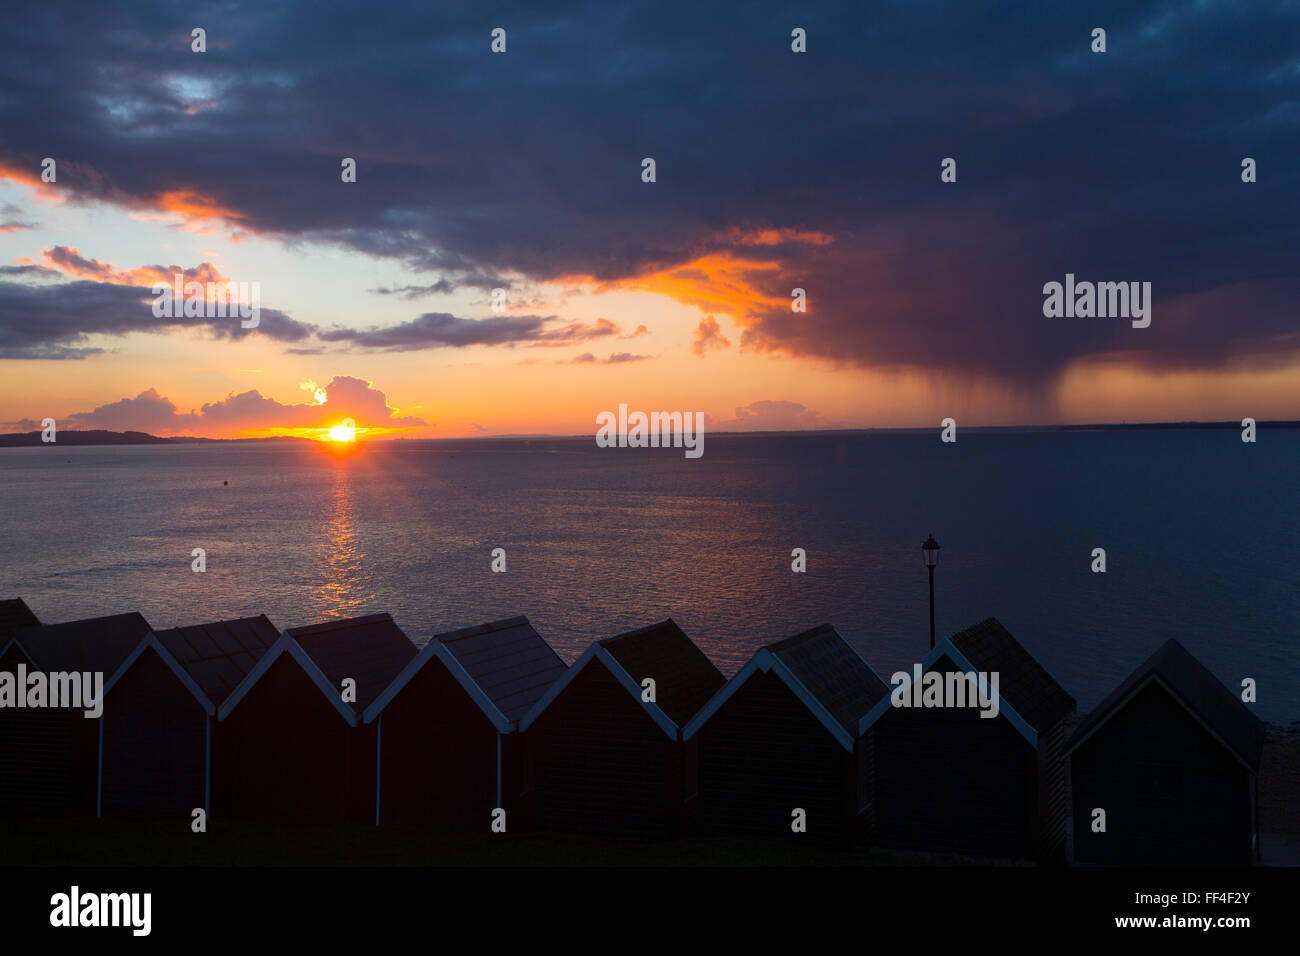 Isle of Wight, UK. 10th February, 2016. UK Weather, Sunset with approaching rainstorm, from Gurnard, Isle of Wight, - Stock Image